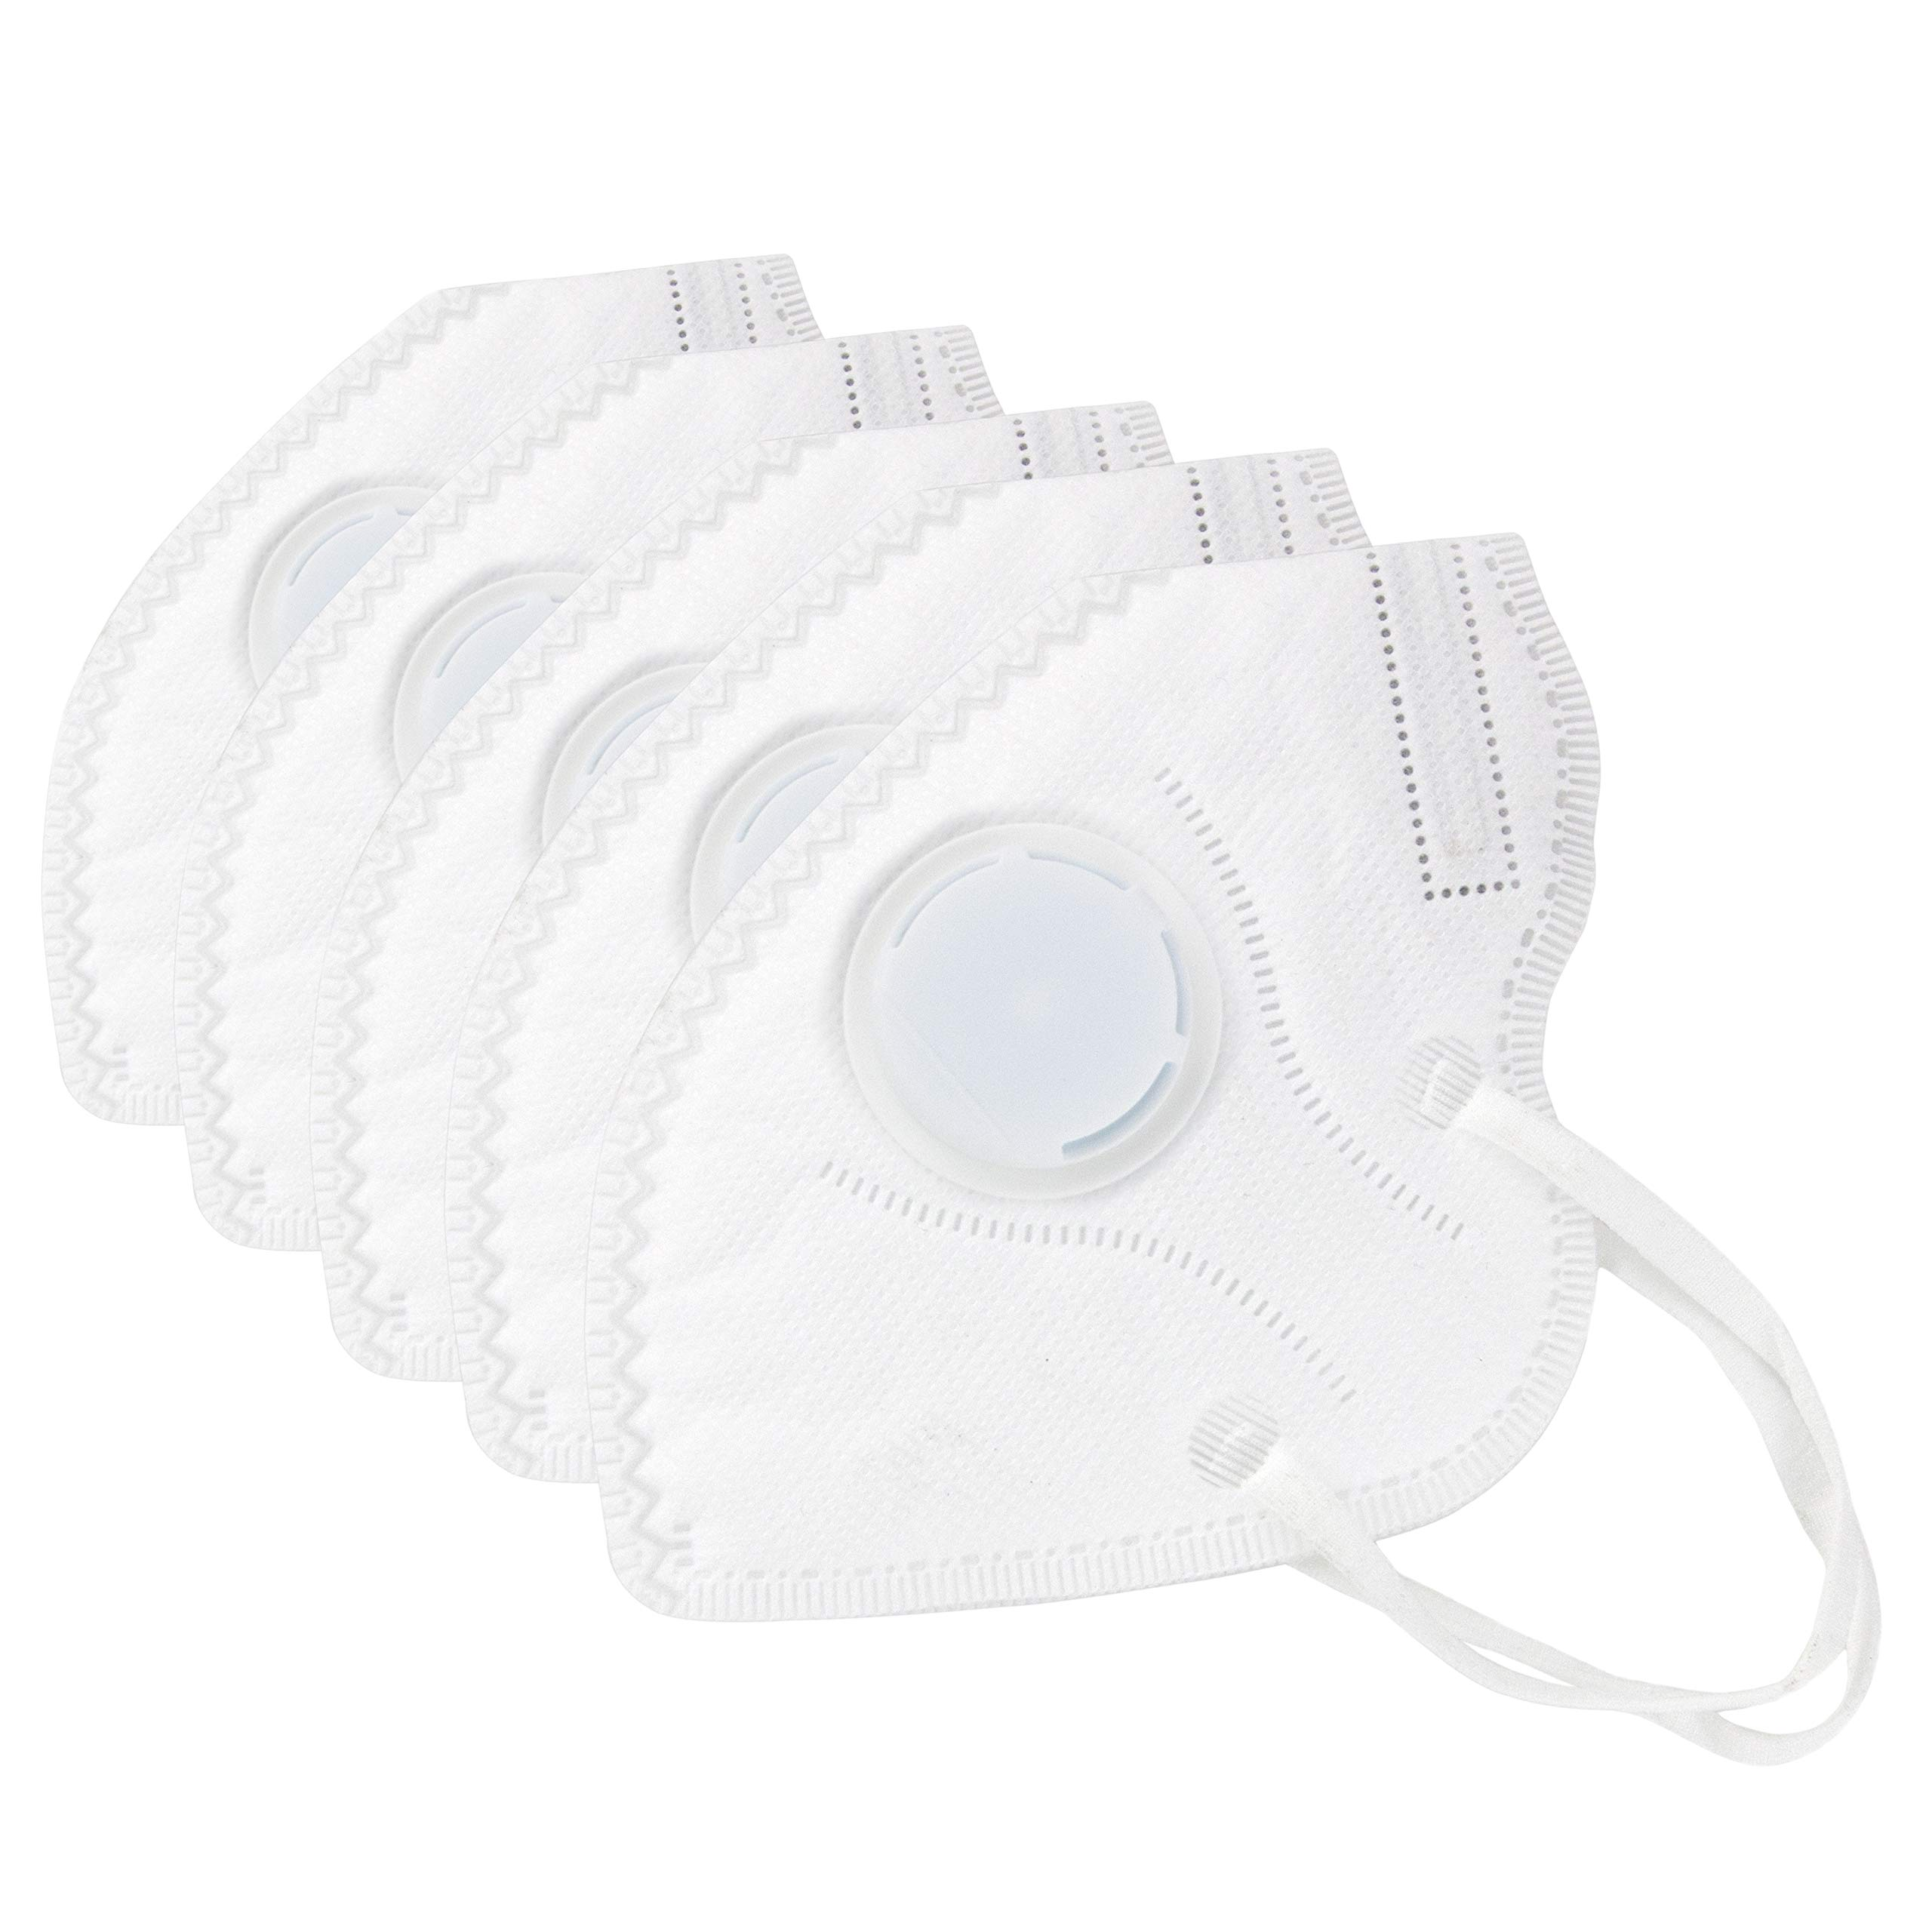 Muryobao Mouth Mask Anti Pollution Mask Unisex Outdoor Protection N95 4 Layer Filter Insert Anti Dust Mask with Valve Filter for Men Women 5 Pack White Upgrade by Muryobao